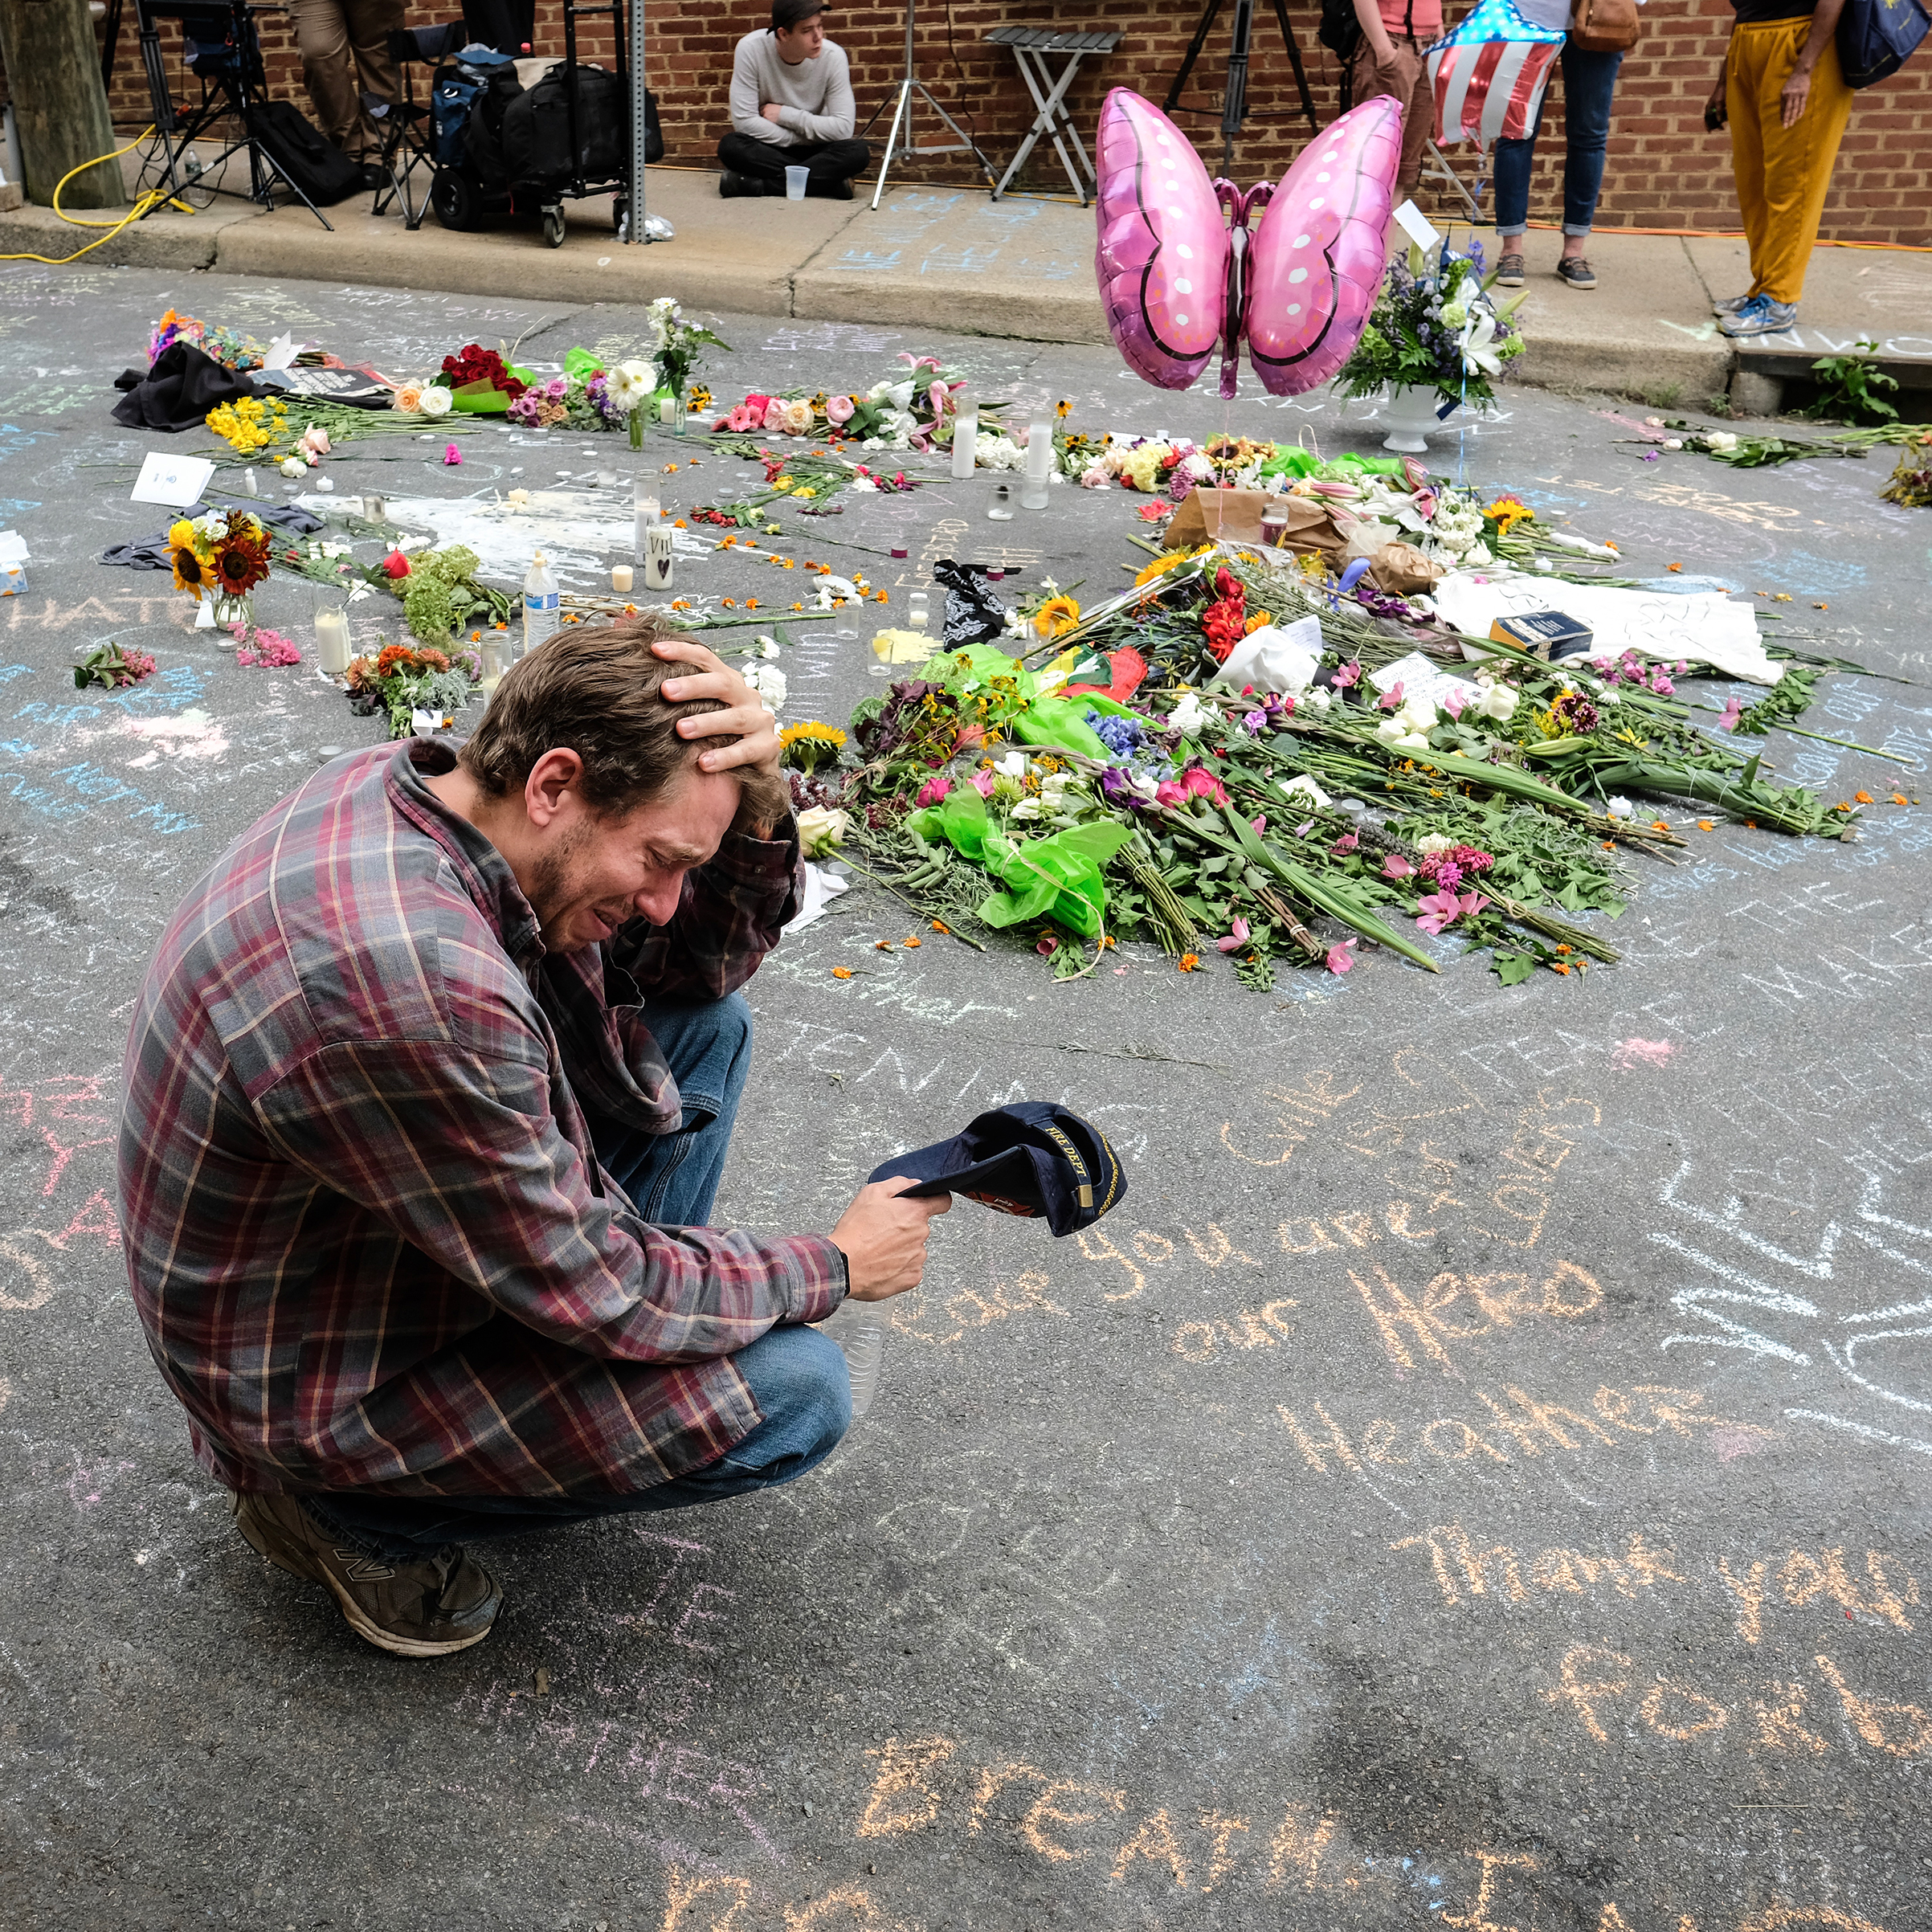 Jake Westley Anderson visits the spot where Heather Heyer died on Aug. 12.